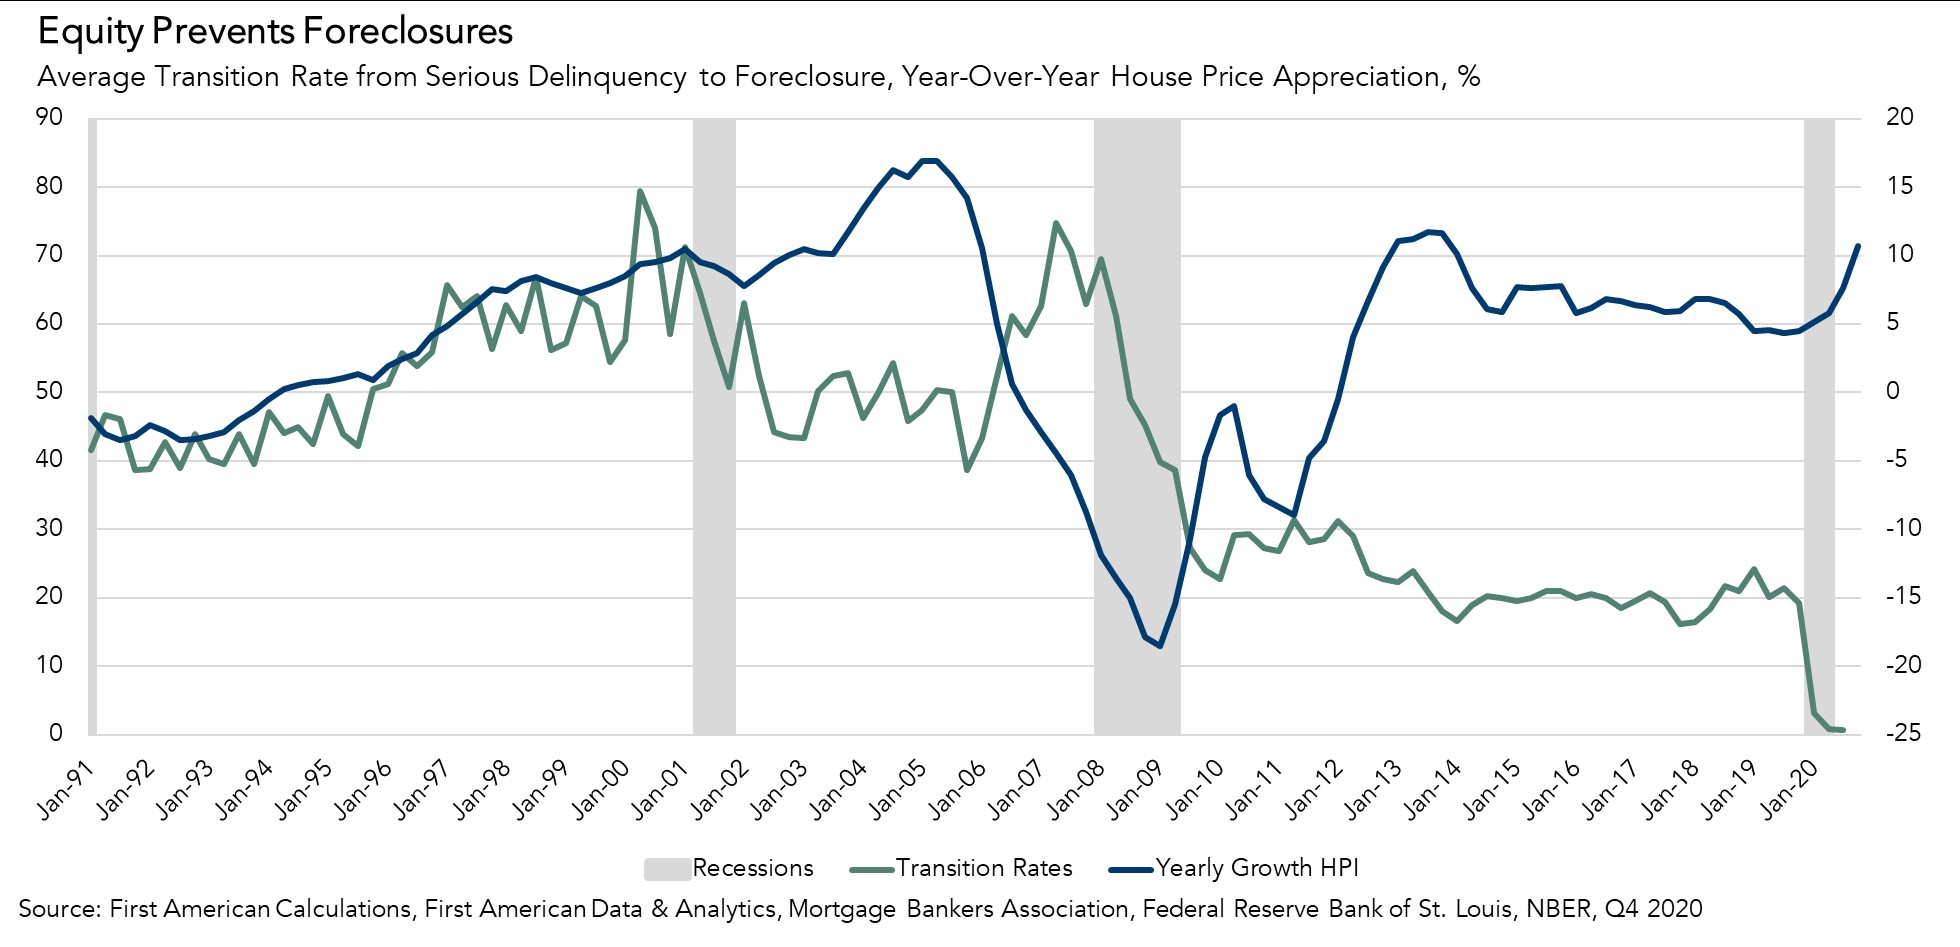 Equity Prevents Foreclosures Chart Q4 2020